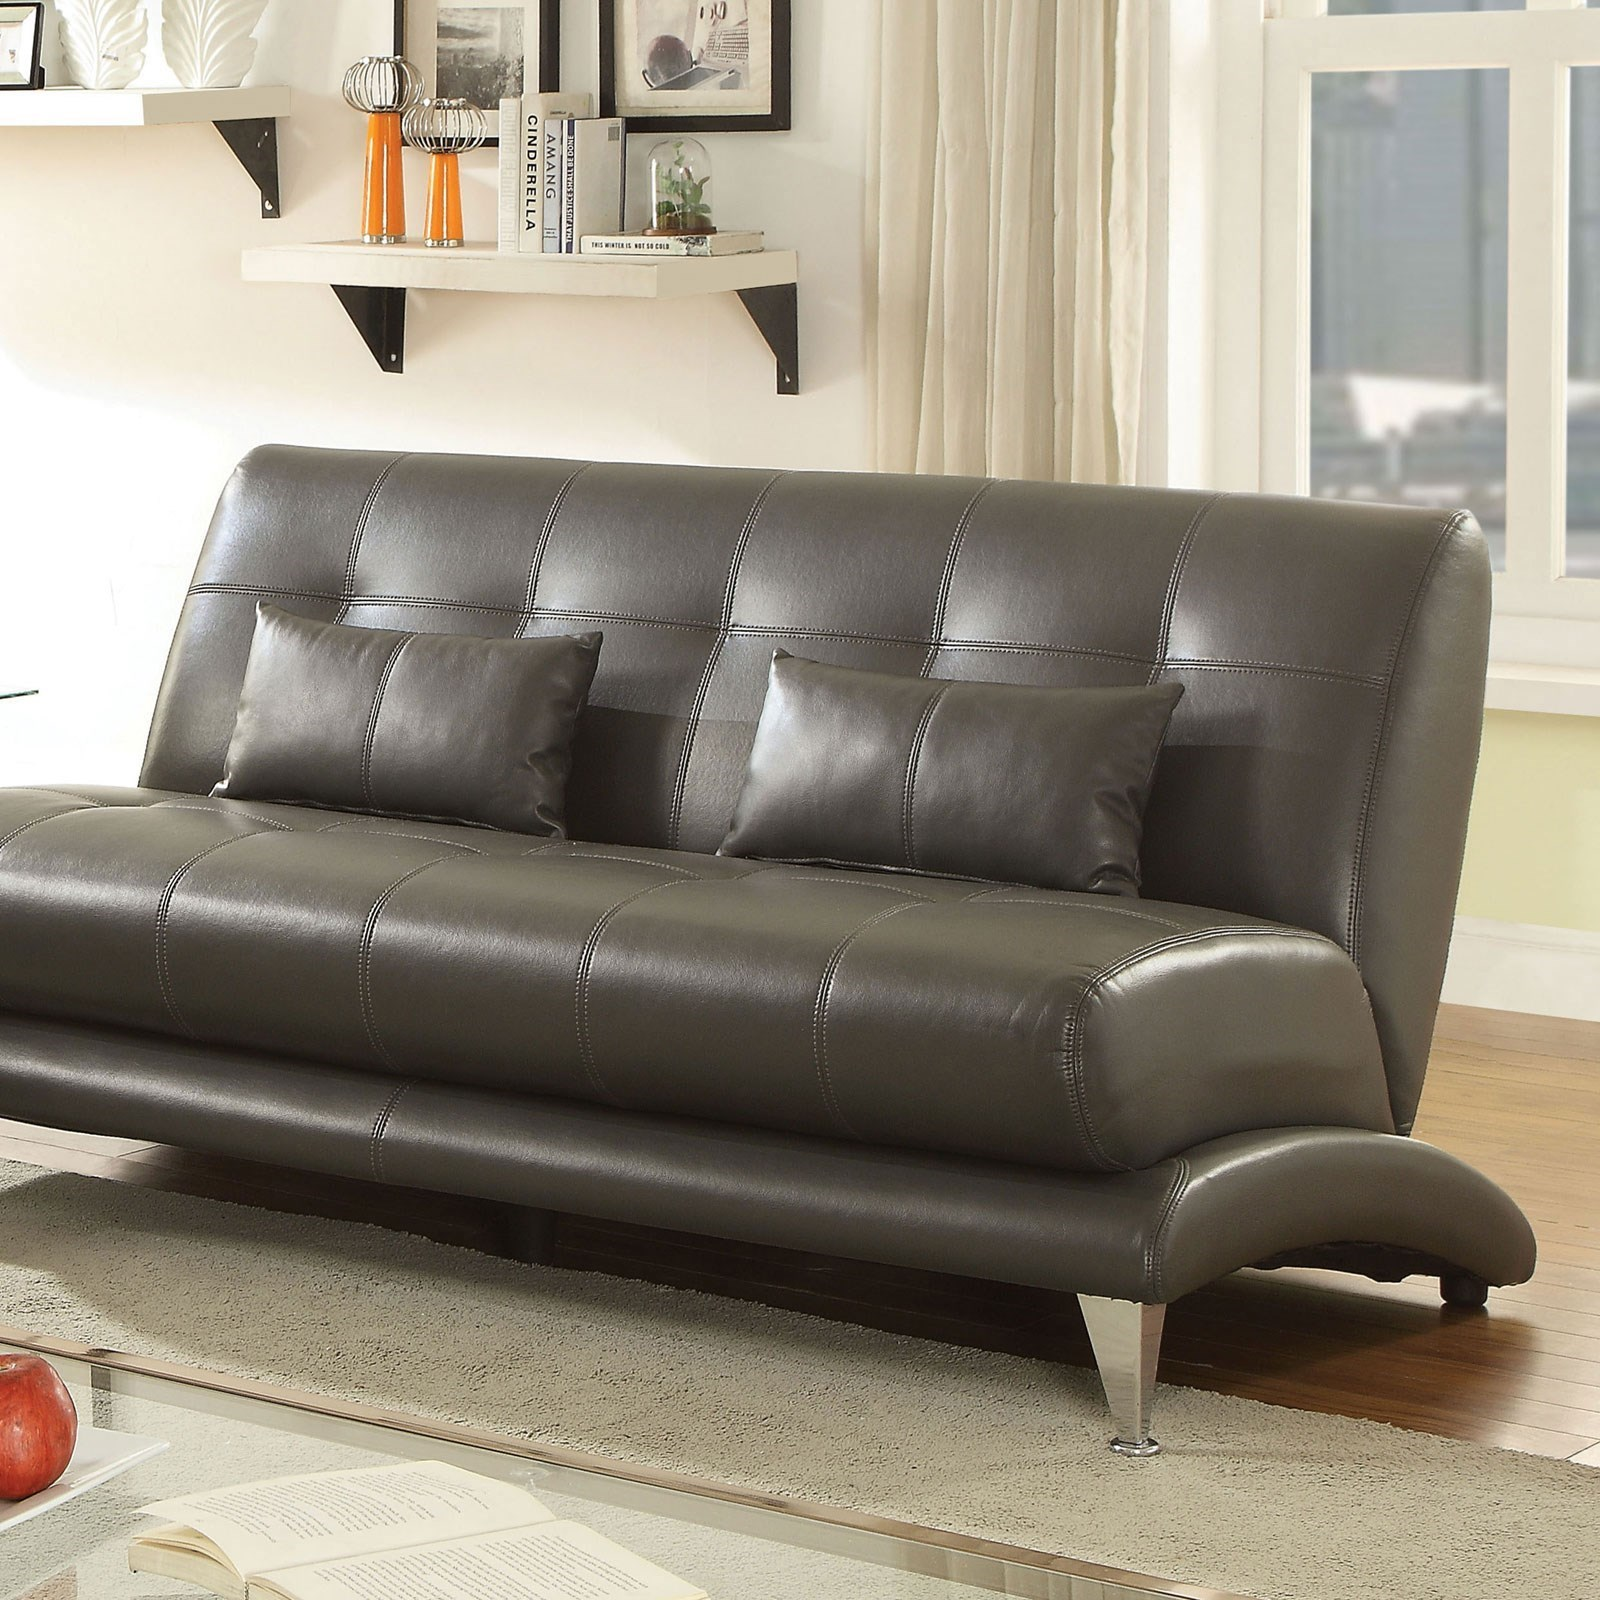 Furniture of America Sherri Contemporary Tufted Sofa with Pillows ...